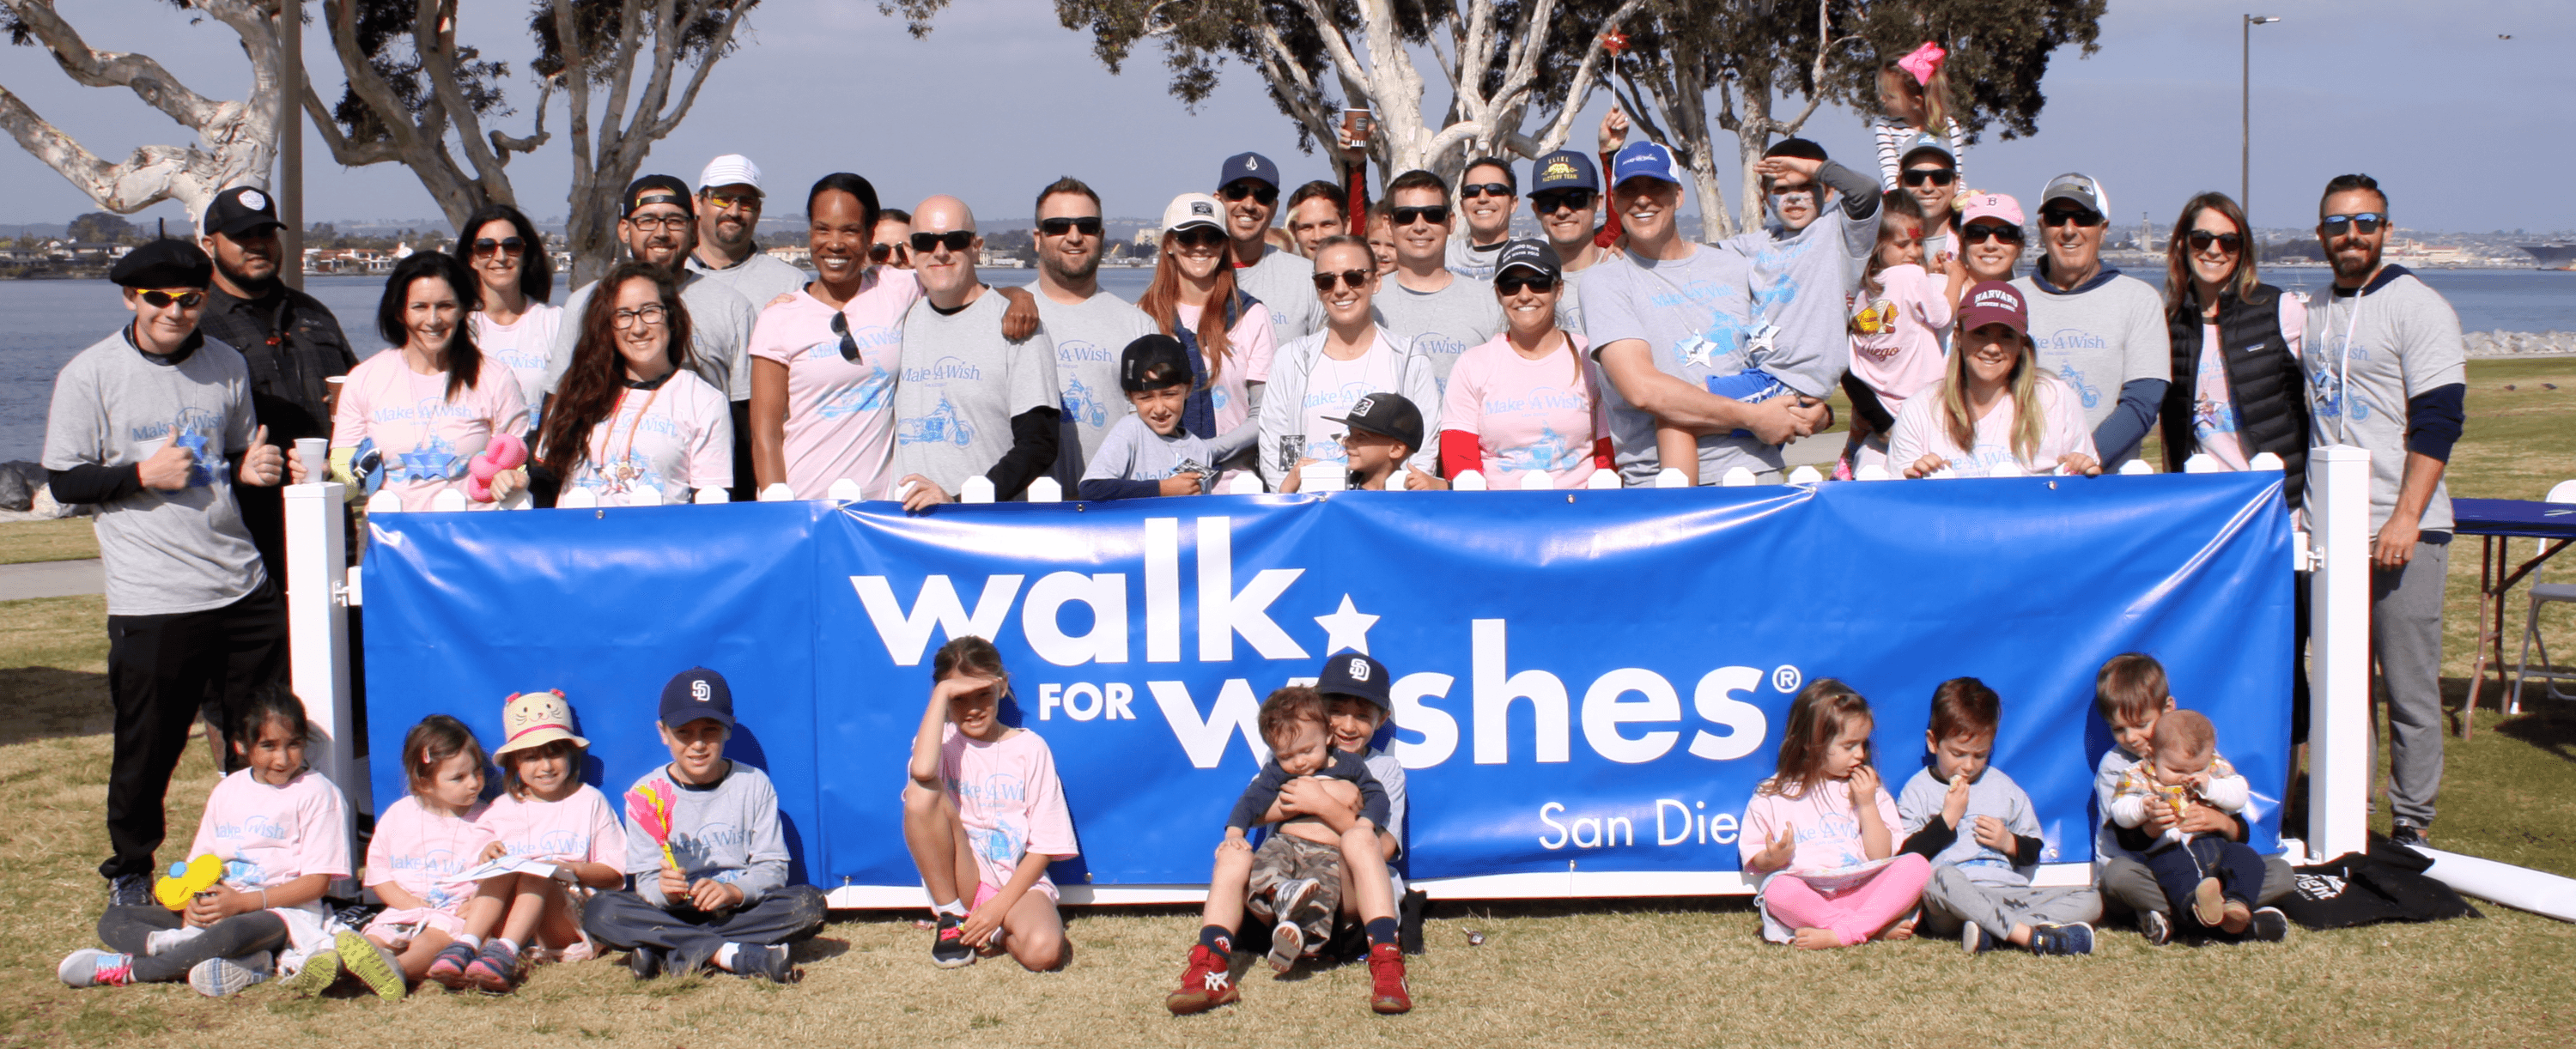 Walk for Wishes - San Diego, CA